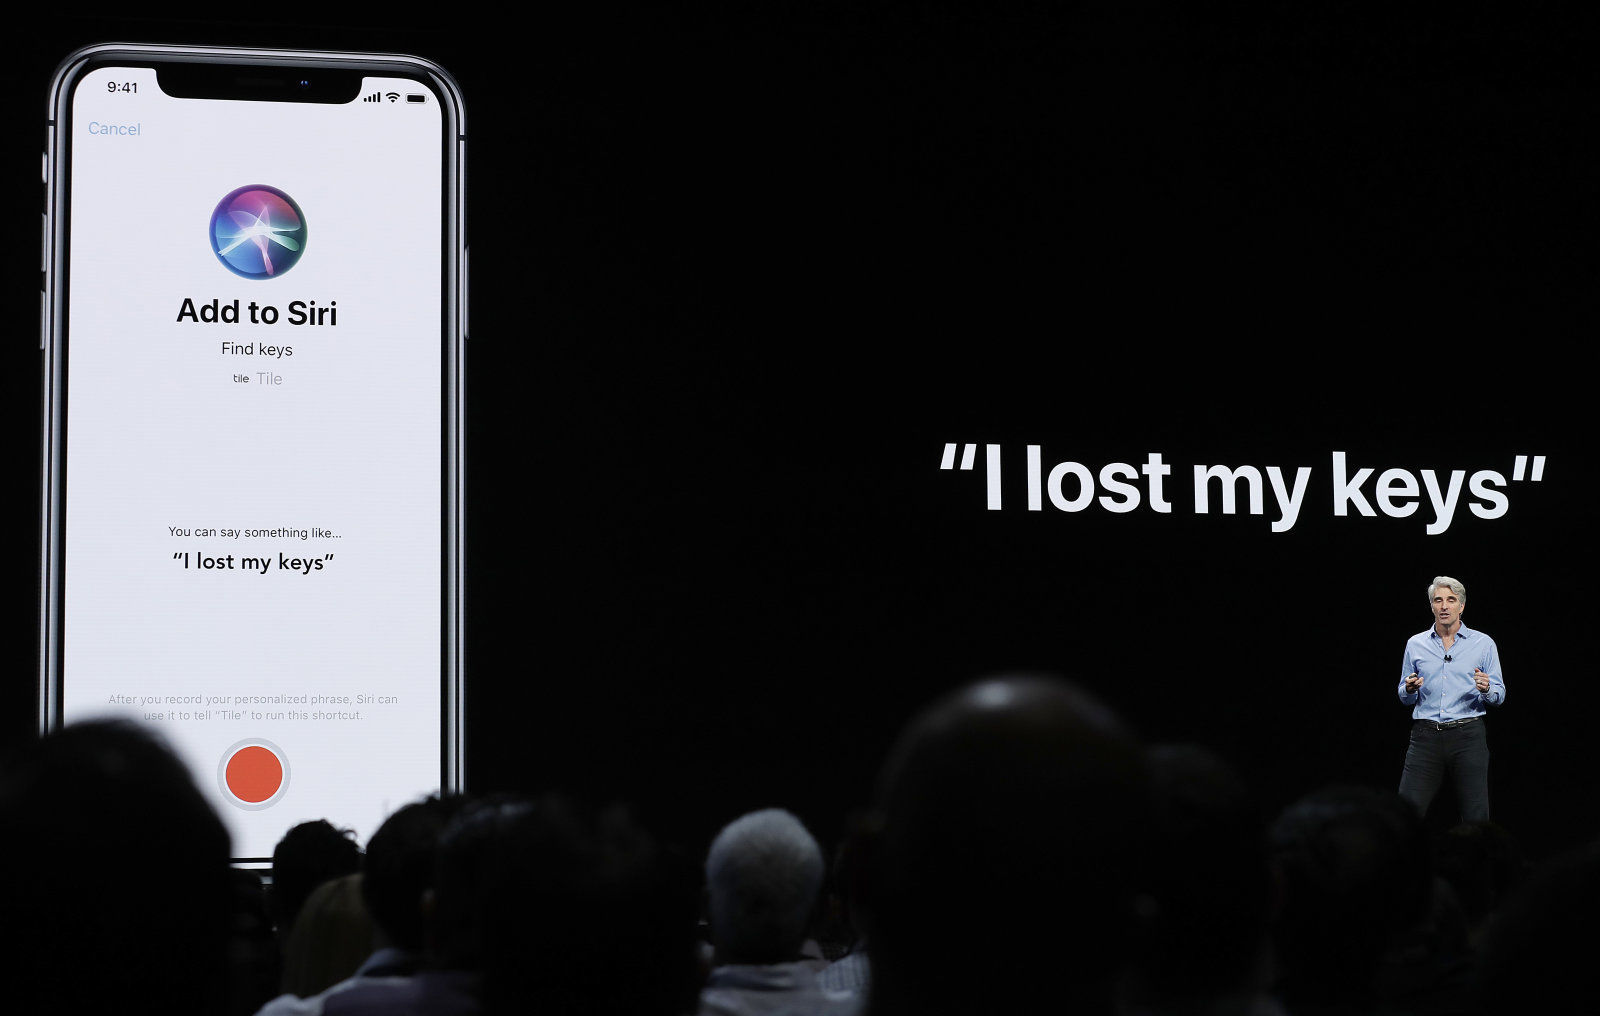 Craig Federighi, Apple's senior vice president of Software Engineering, speaks about Siri during an announcement of new products at the Apple Worldwide Developers Conference Monday, June 4, 2018, in San Jose, Calif. (AP Photo/Marcio Jose Sanchez)